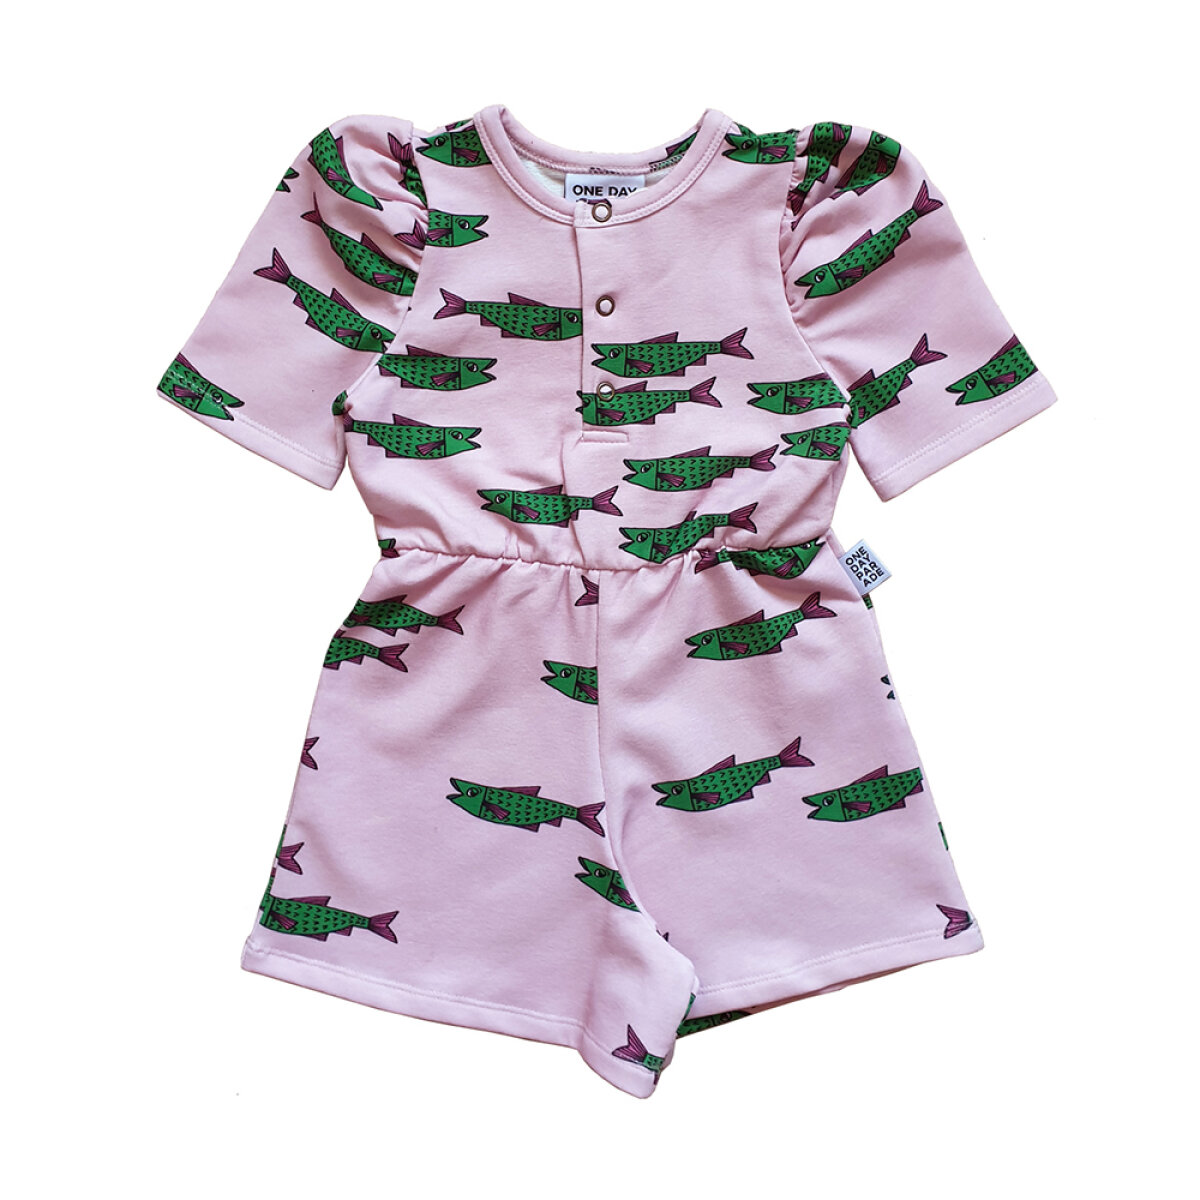 One Day Parade meisjes playsuit PINKFISHAOP roze